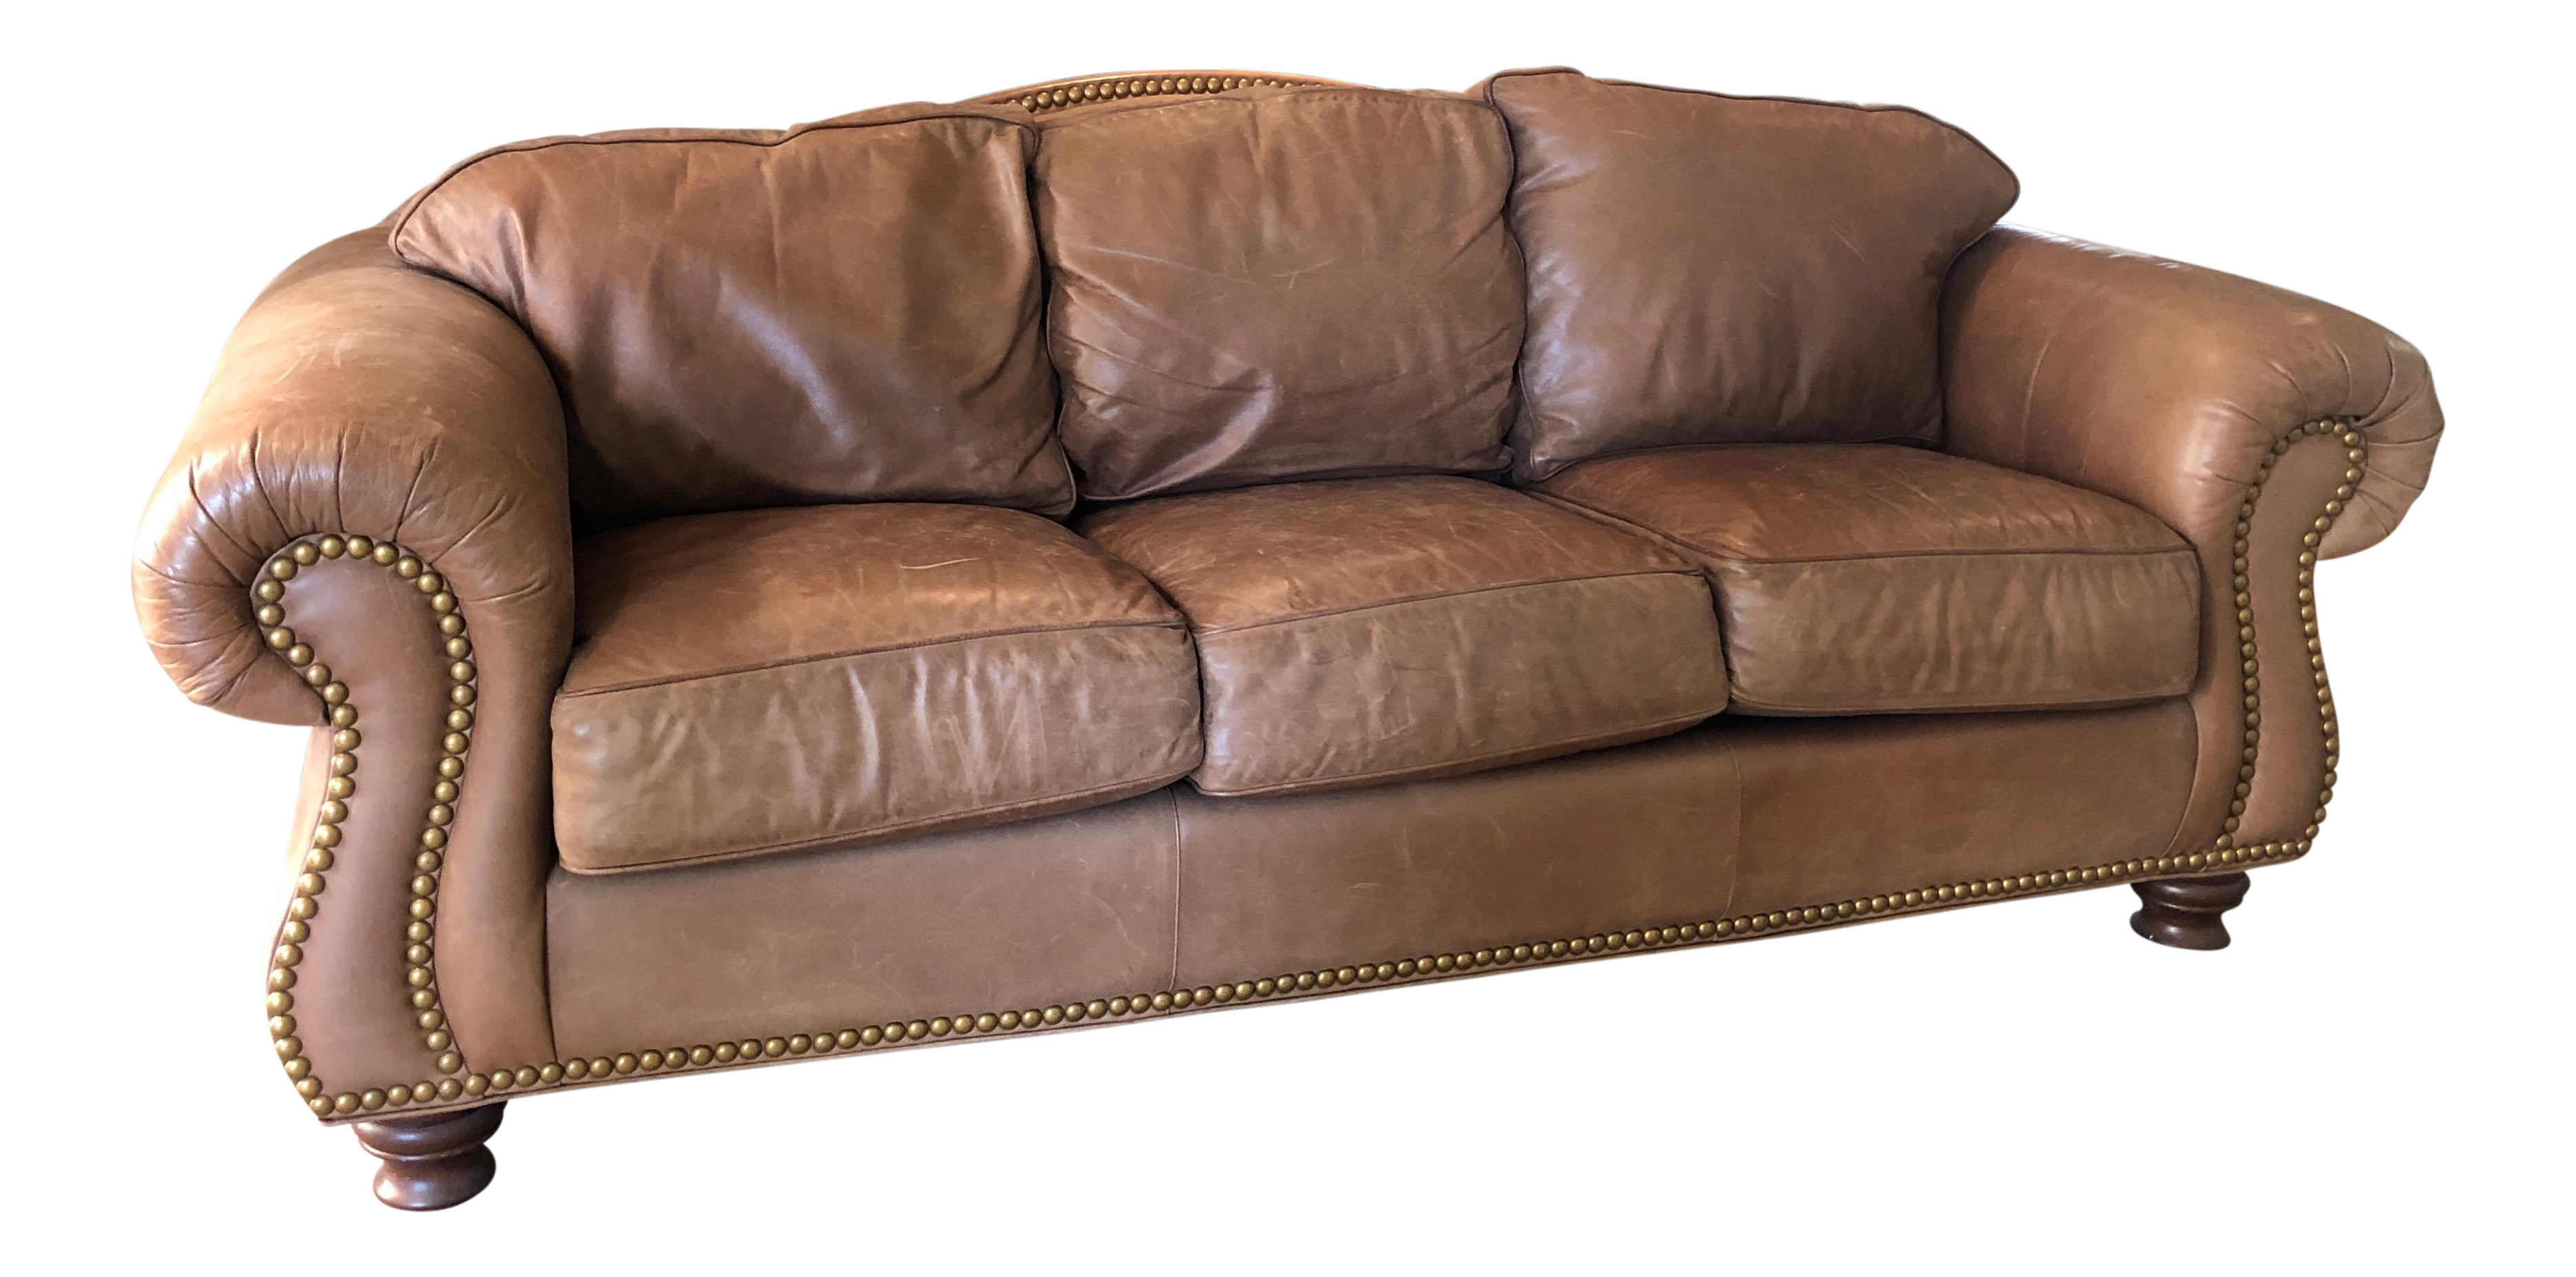 Drexel Heritage Rustic Brown Leather Couch With Brass Nailhead Trim